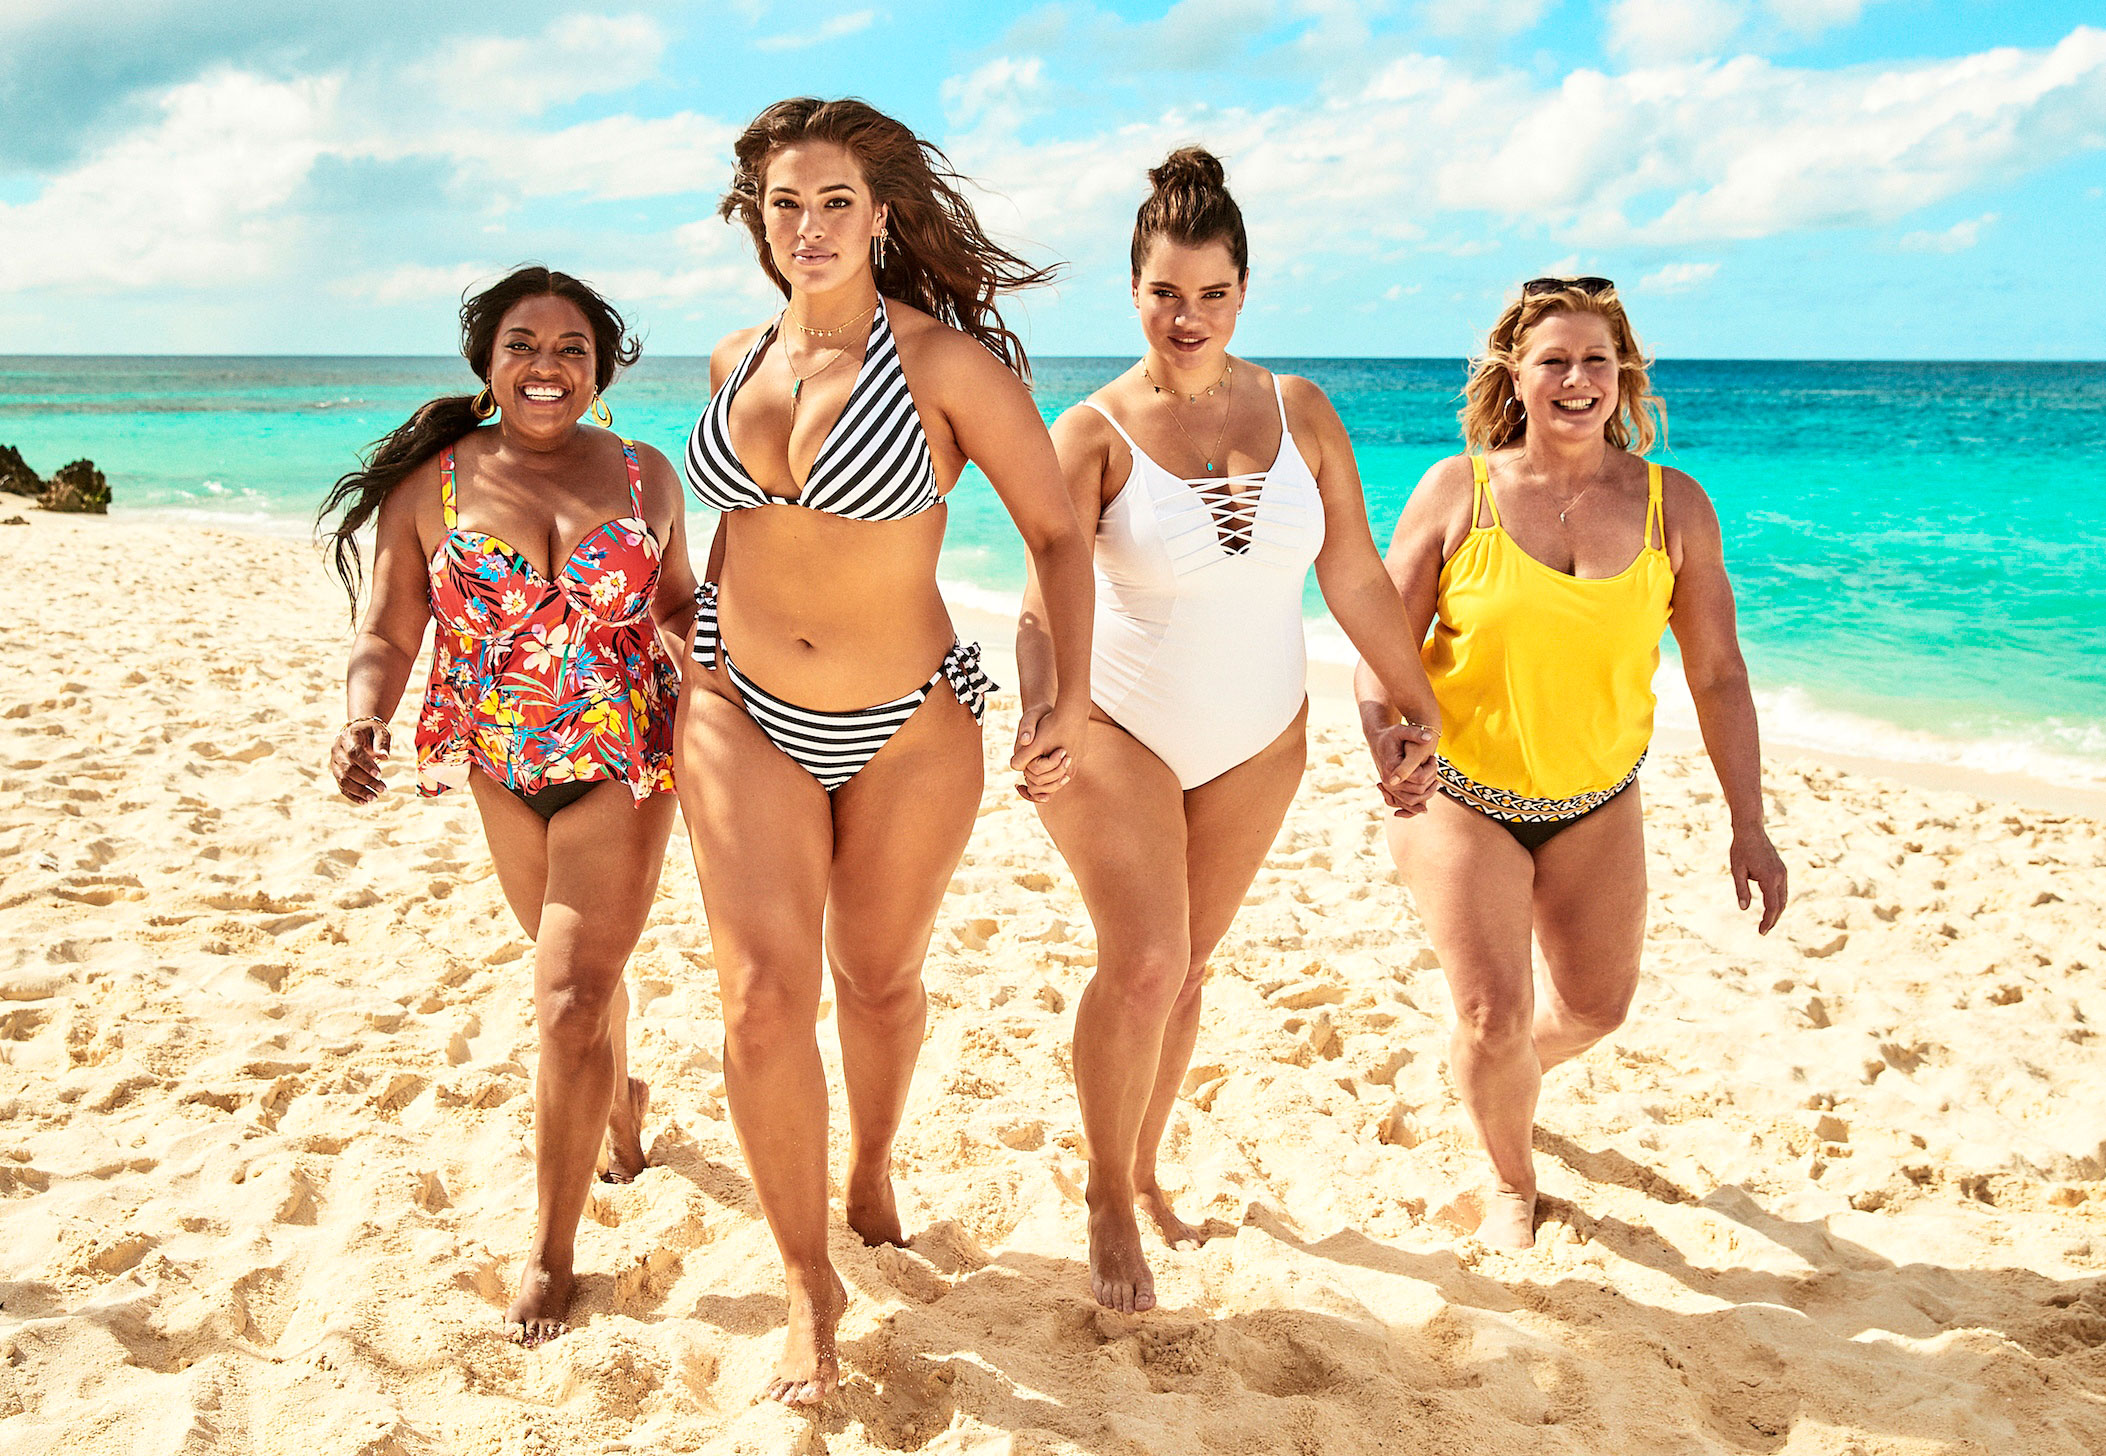 Ashley Graham Sherri Shepherd Lead Body-Positive Swim Campaign - The swim line offers a diversity of designs in their line — from bikinis to one-pieces to tankinis to swimdresses to bike shorts and beach dresses.